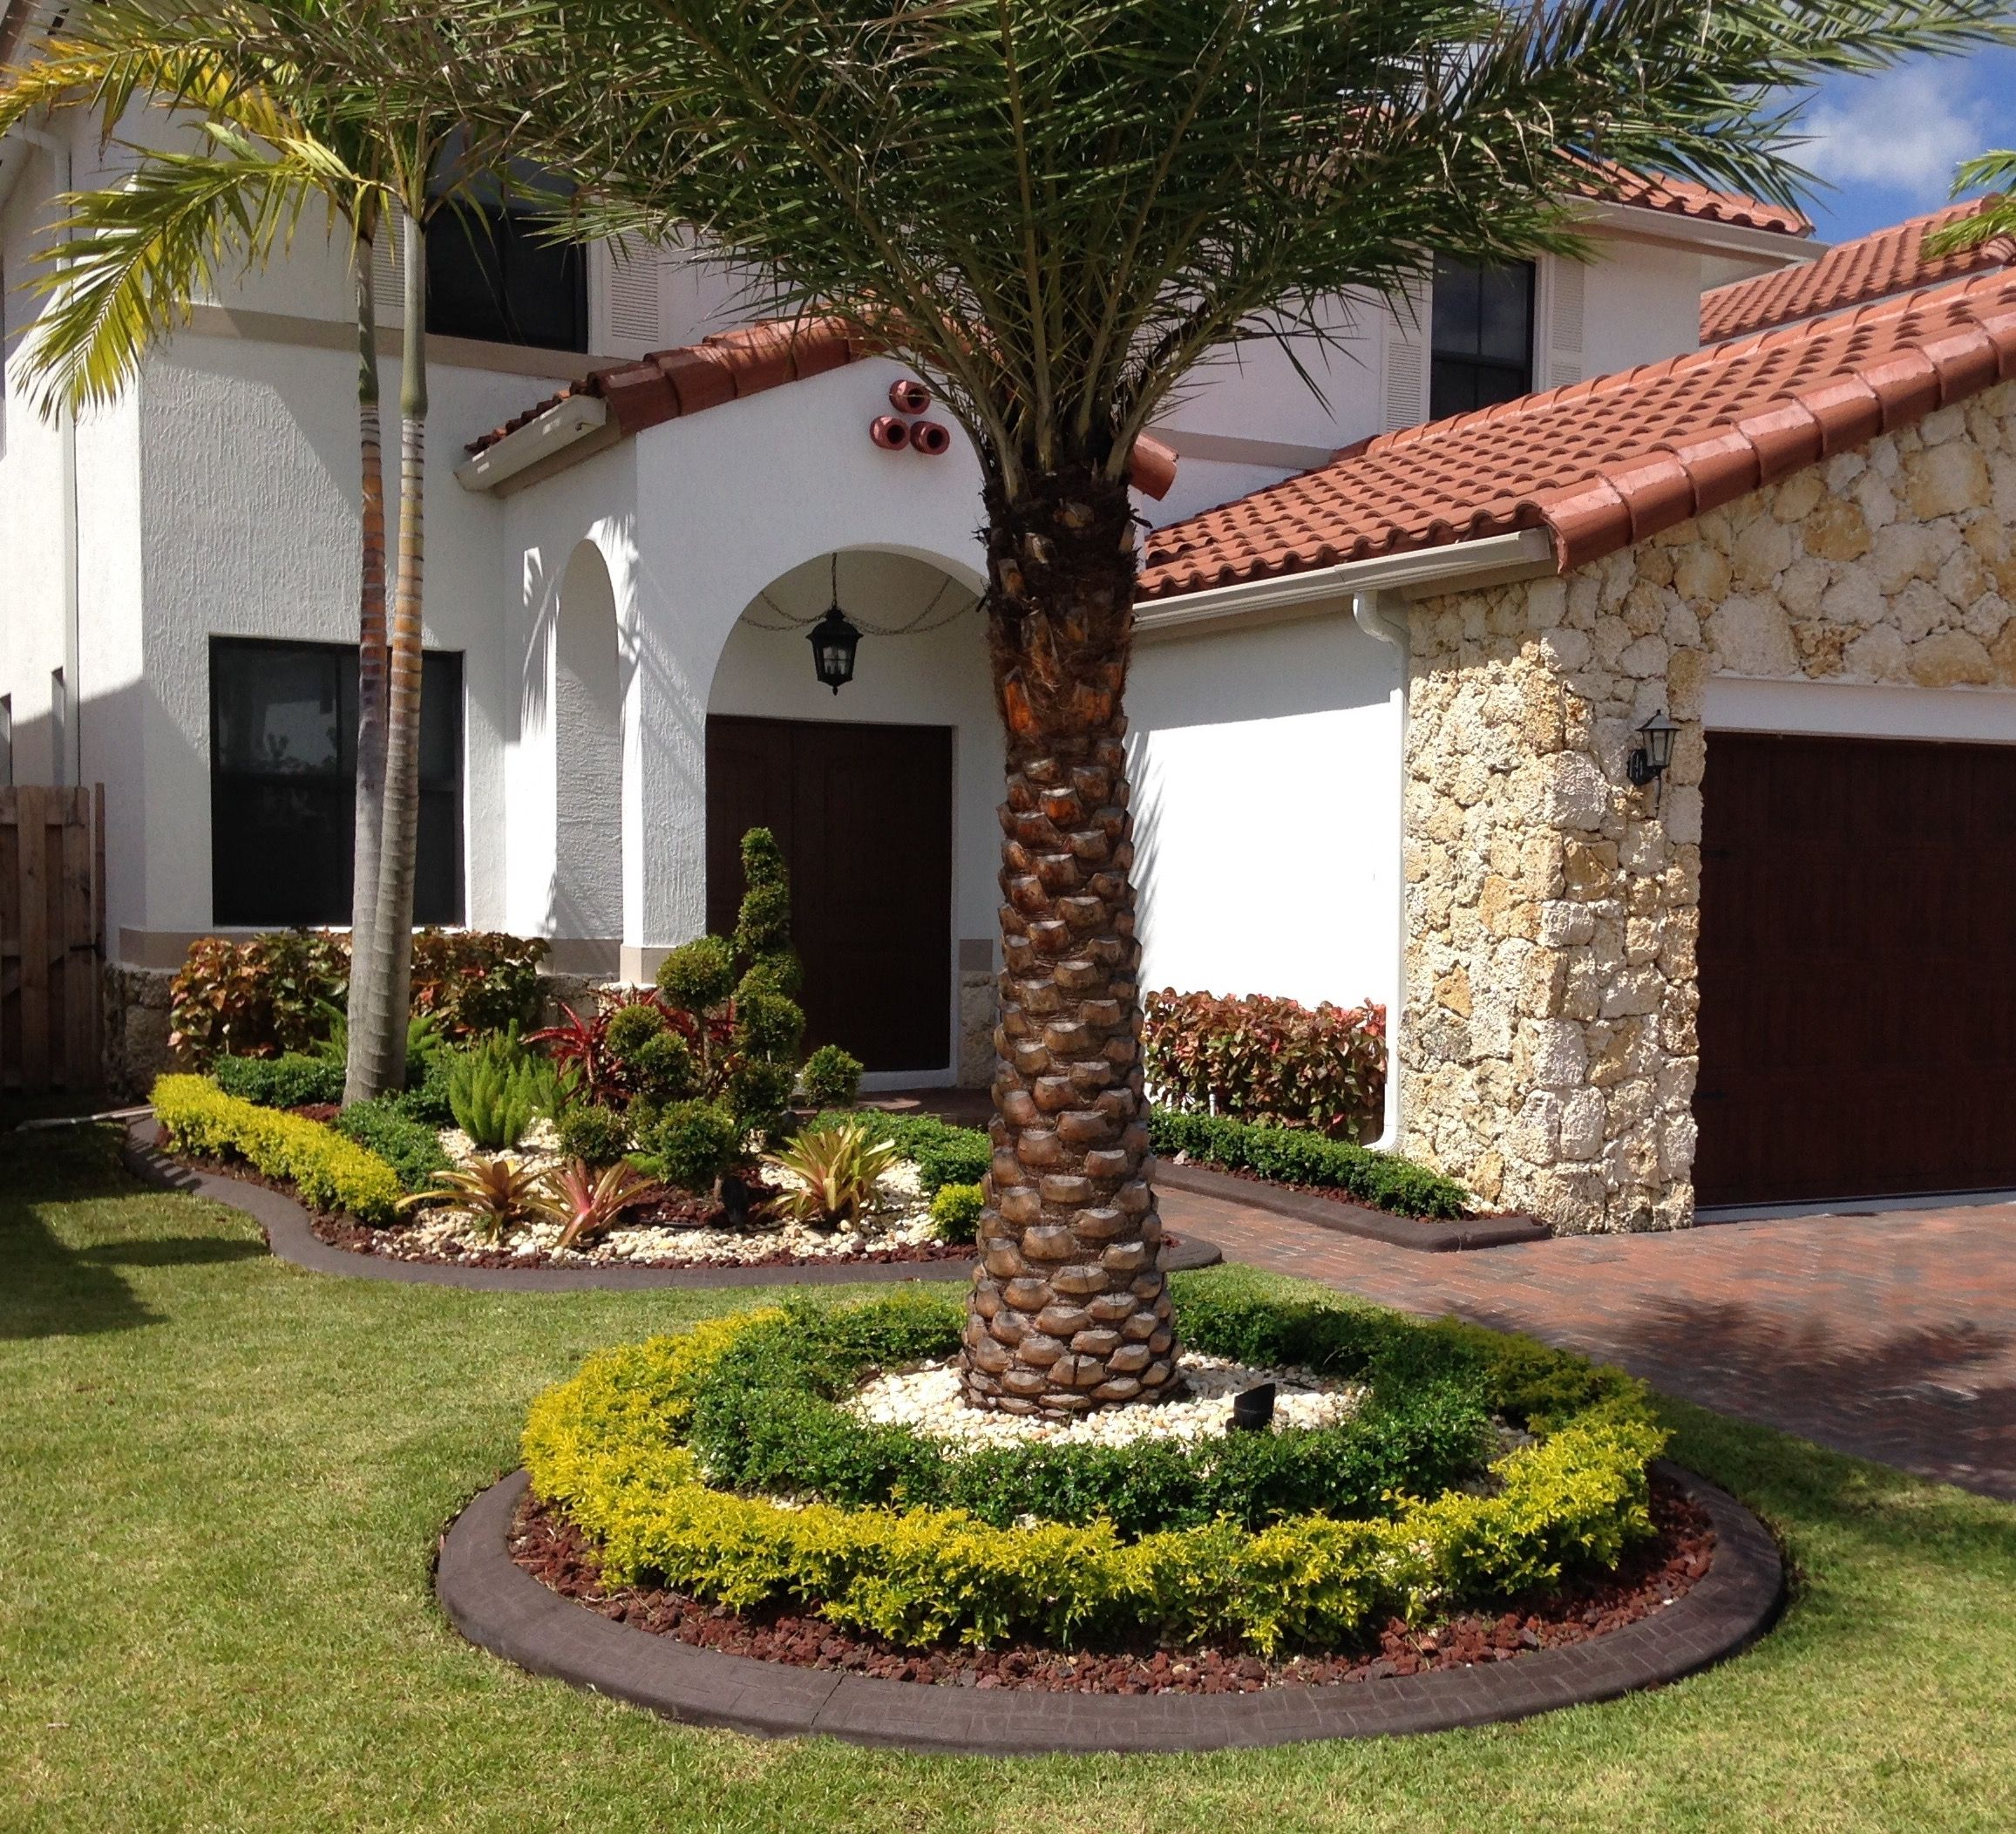 Spanish Fort Town Center Apartments: Pin By MIAMI EXCLUSIVE BORDERS On Garden Edges And Borders